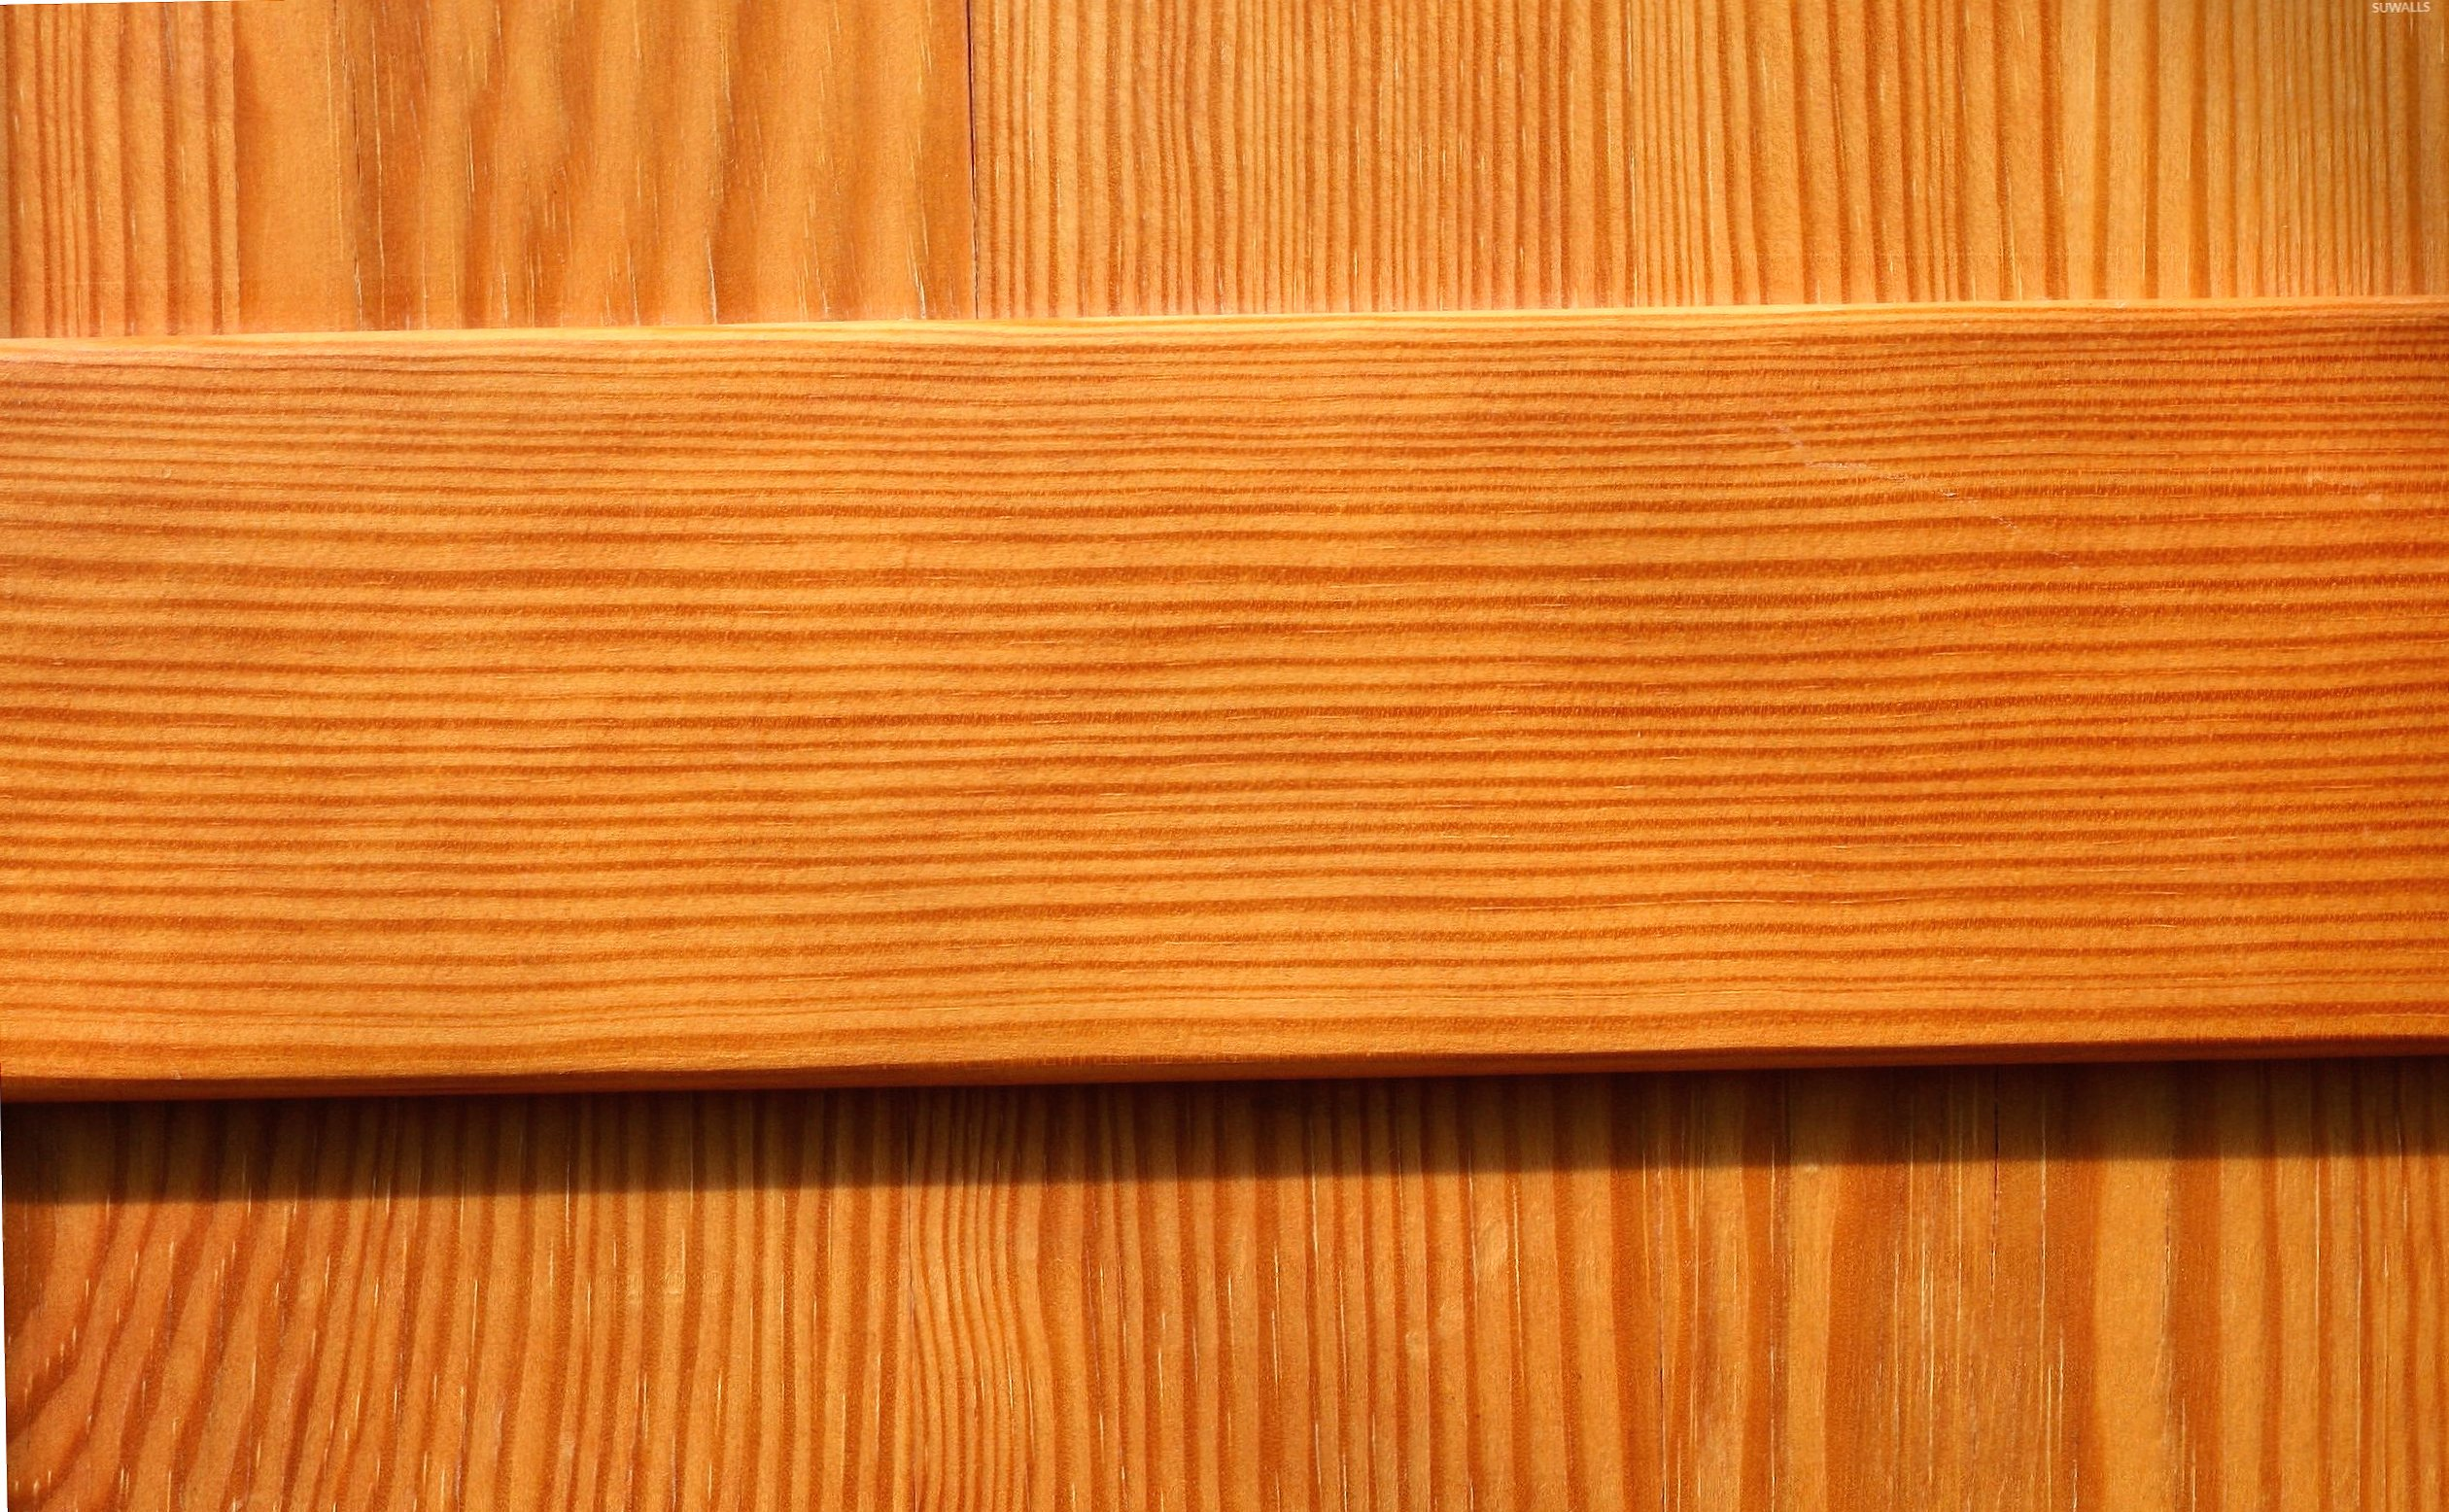 Wooden panels wallpapers HD quality